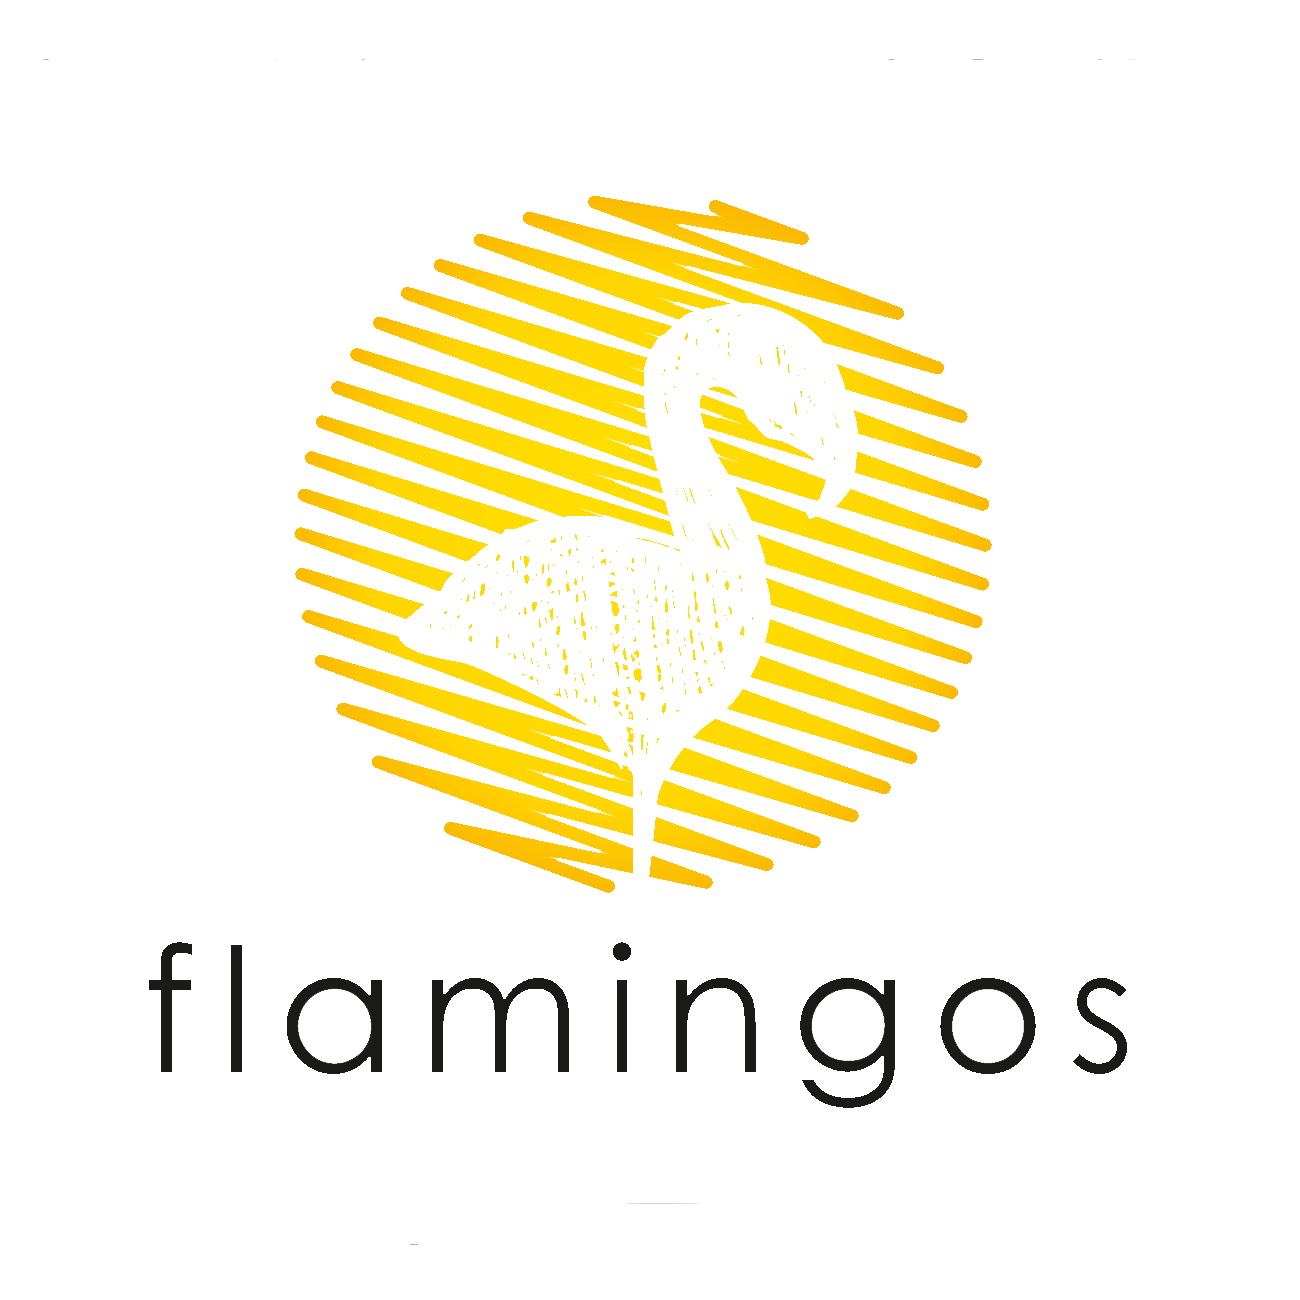 Flamingos Hotel Apartments